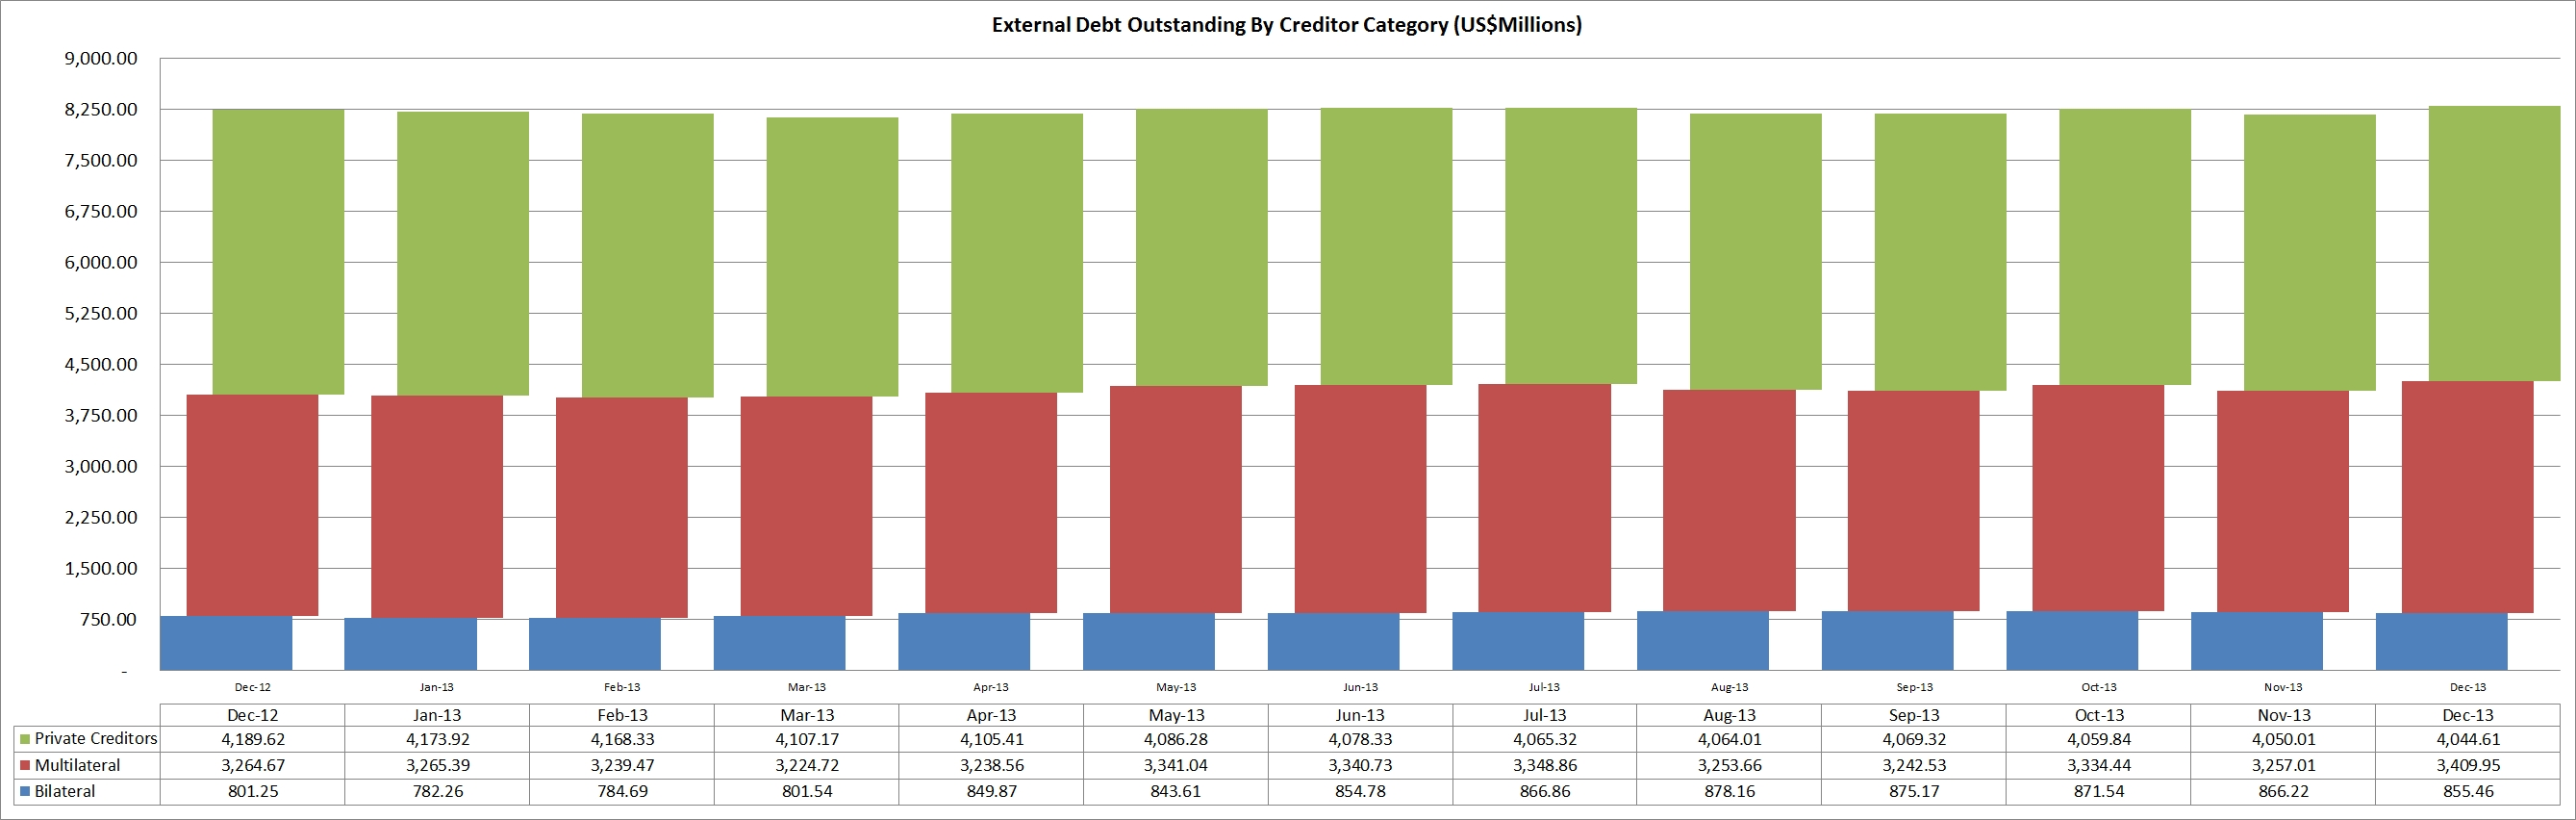 jamaica-external-debt-outstanding-by-creditor-category-2013